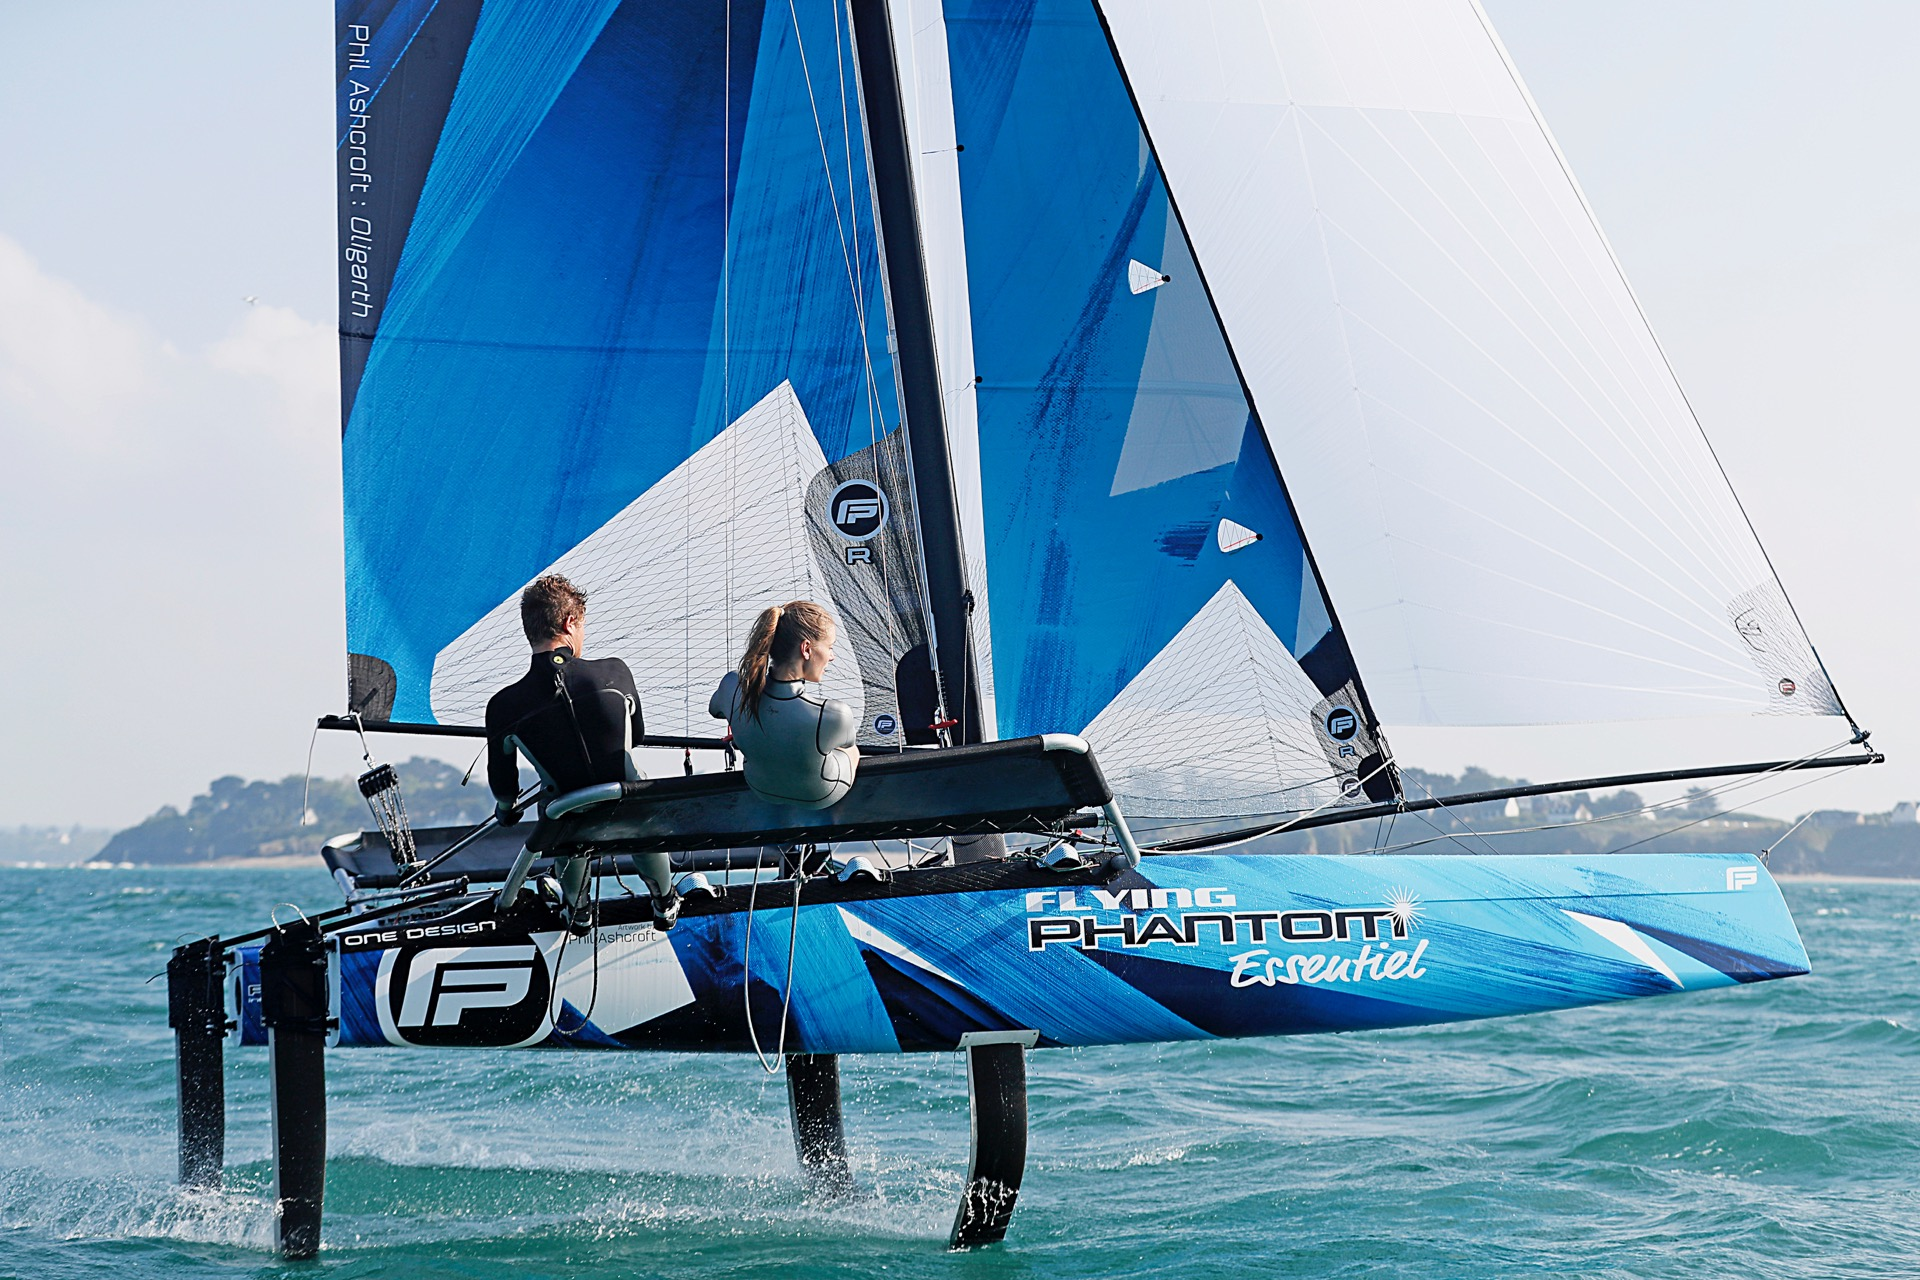 January 2017 - Launch of the Flying Phantom ESSENTIEL a more accessible, freeride foiling catamaran